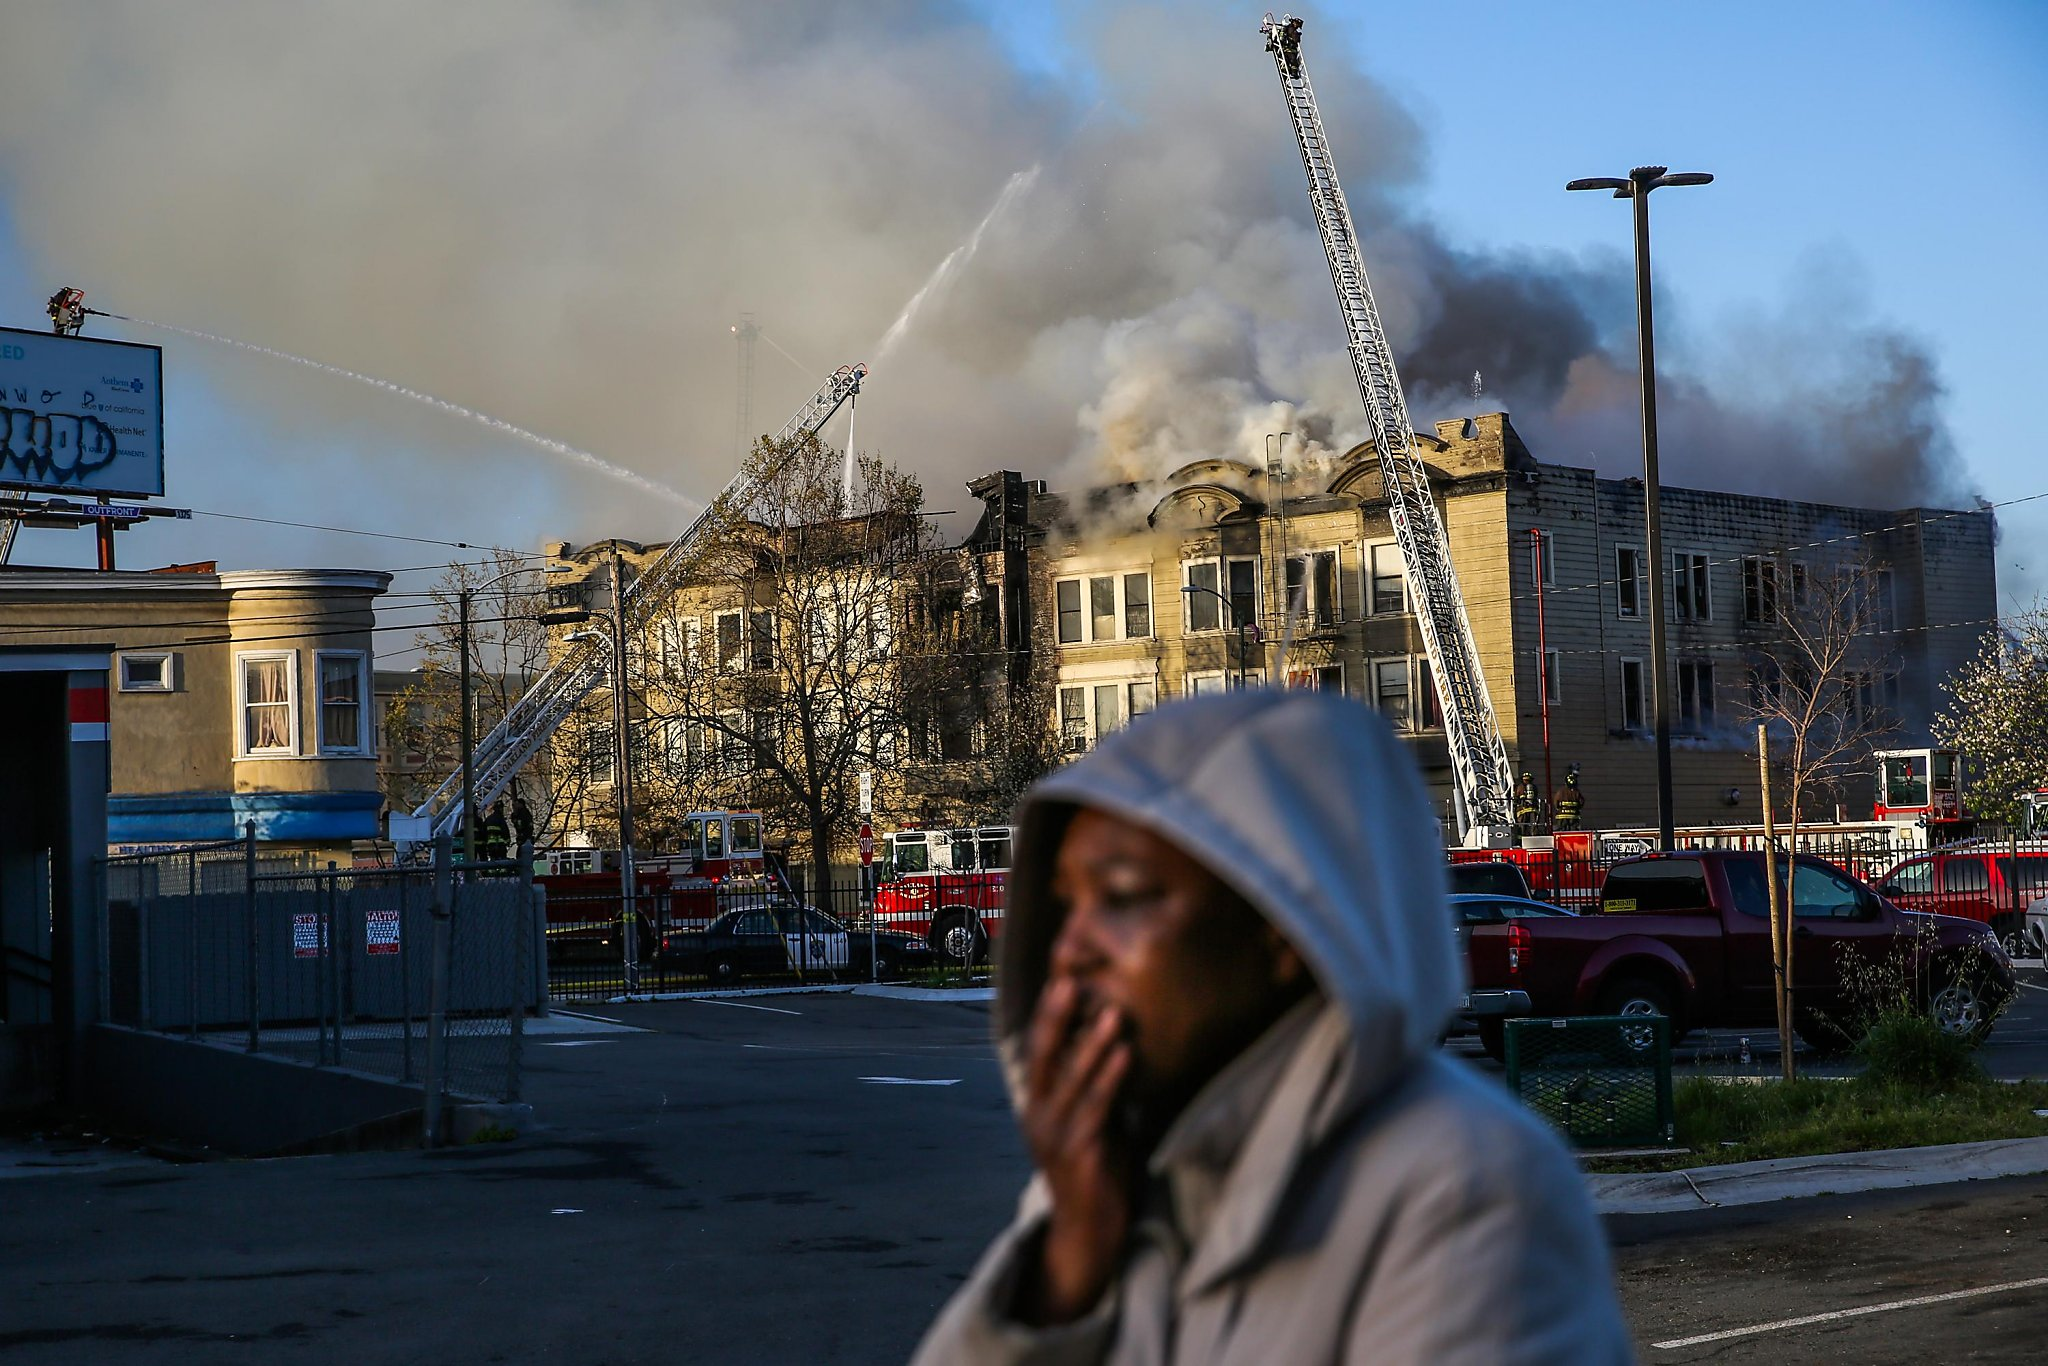 3 People Killed As Fire Burns Troubled Oakland Building Sfgate